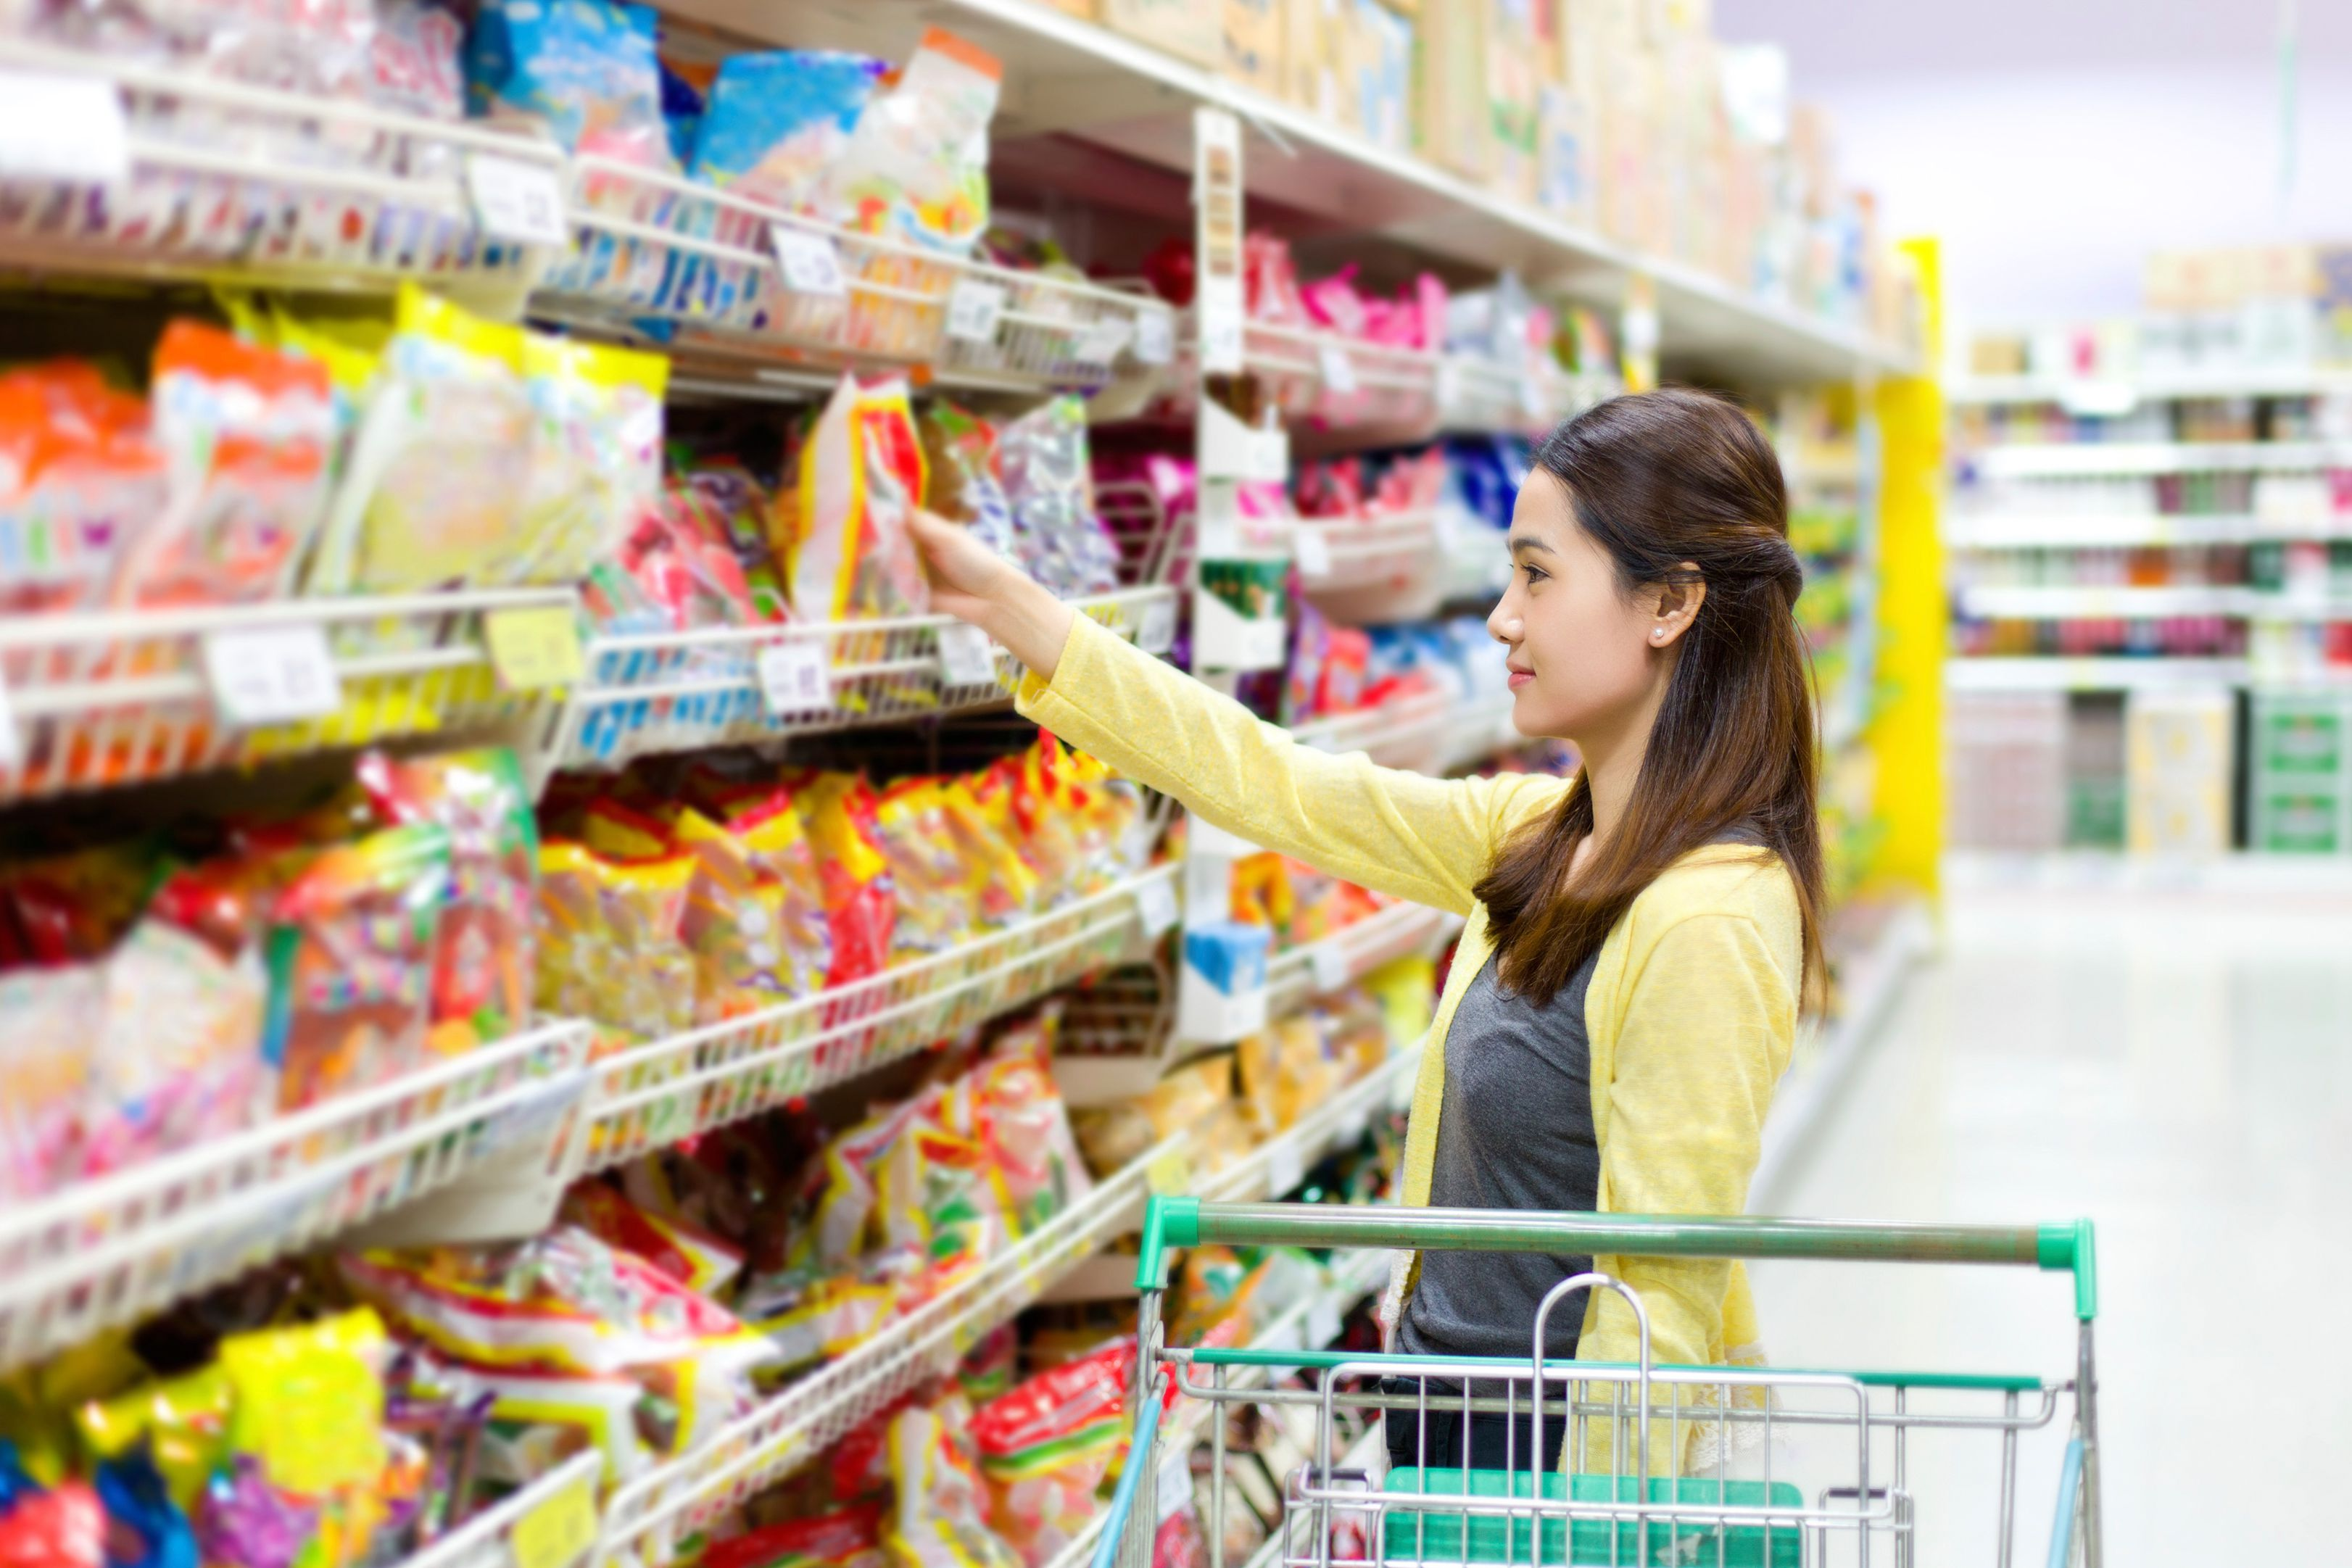 Practical Ways to Curb Impulse Buying